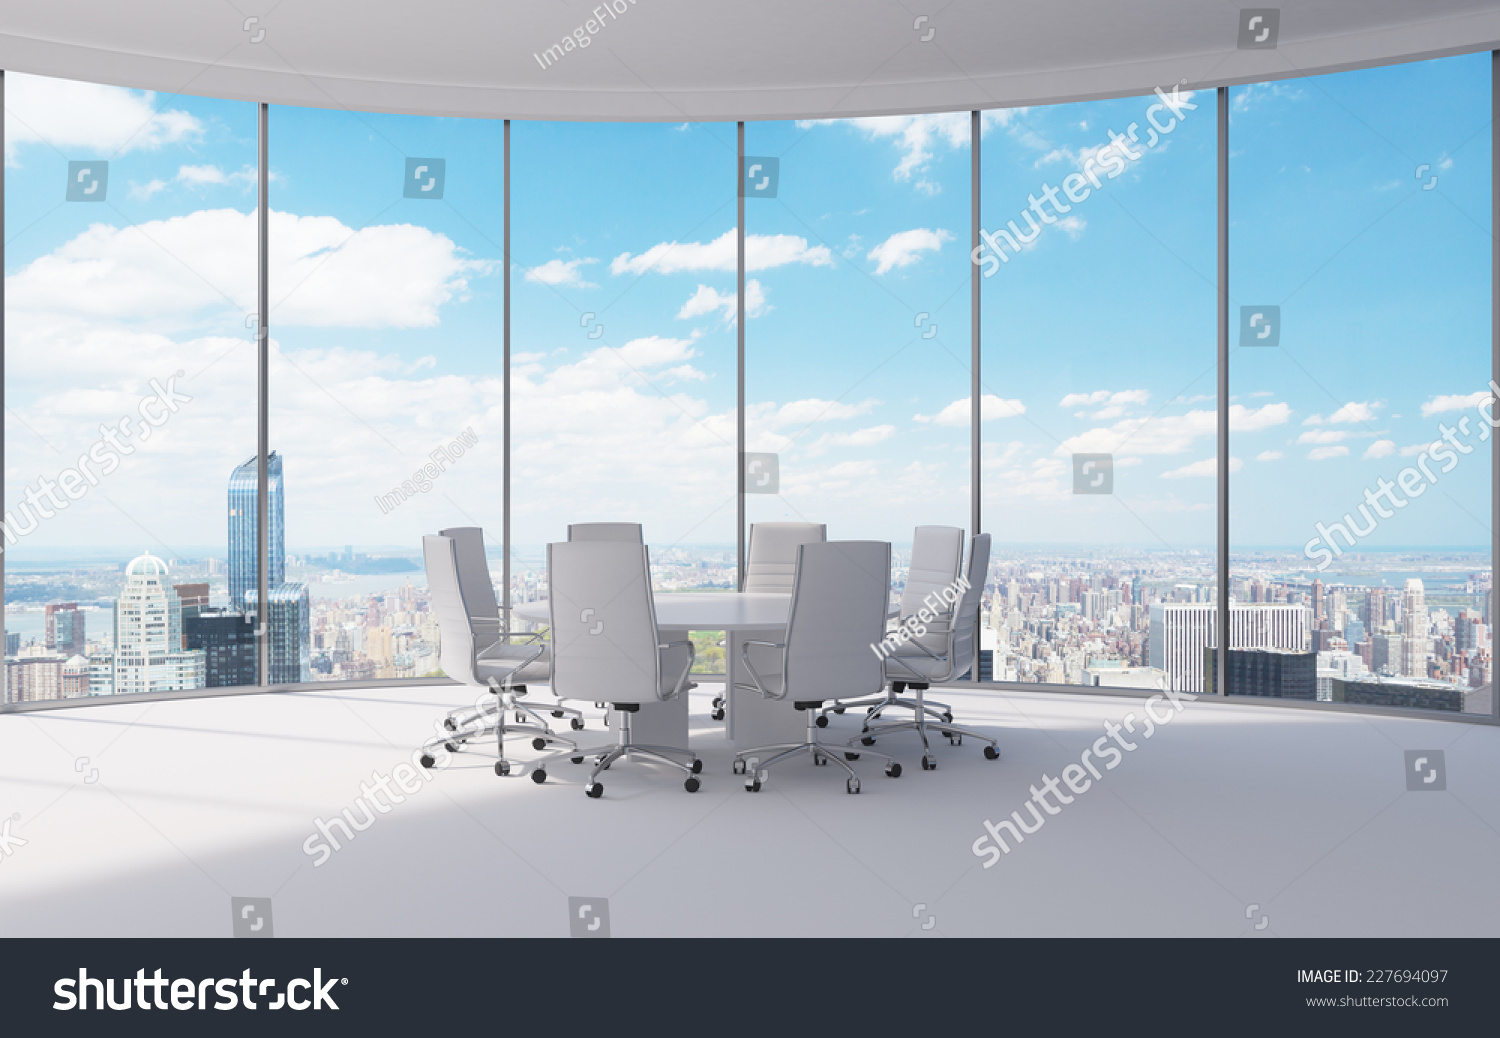 Empty office room with window - Modern Office Window View Conference Room Modern Office With Windows